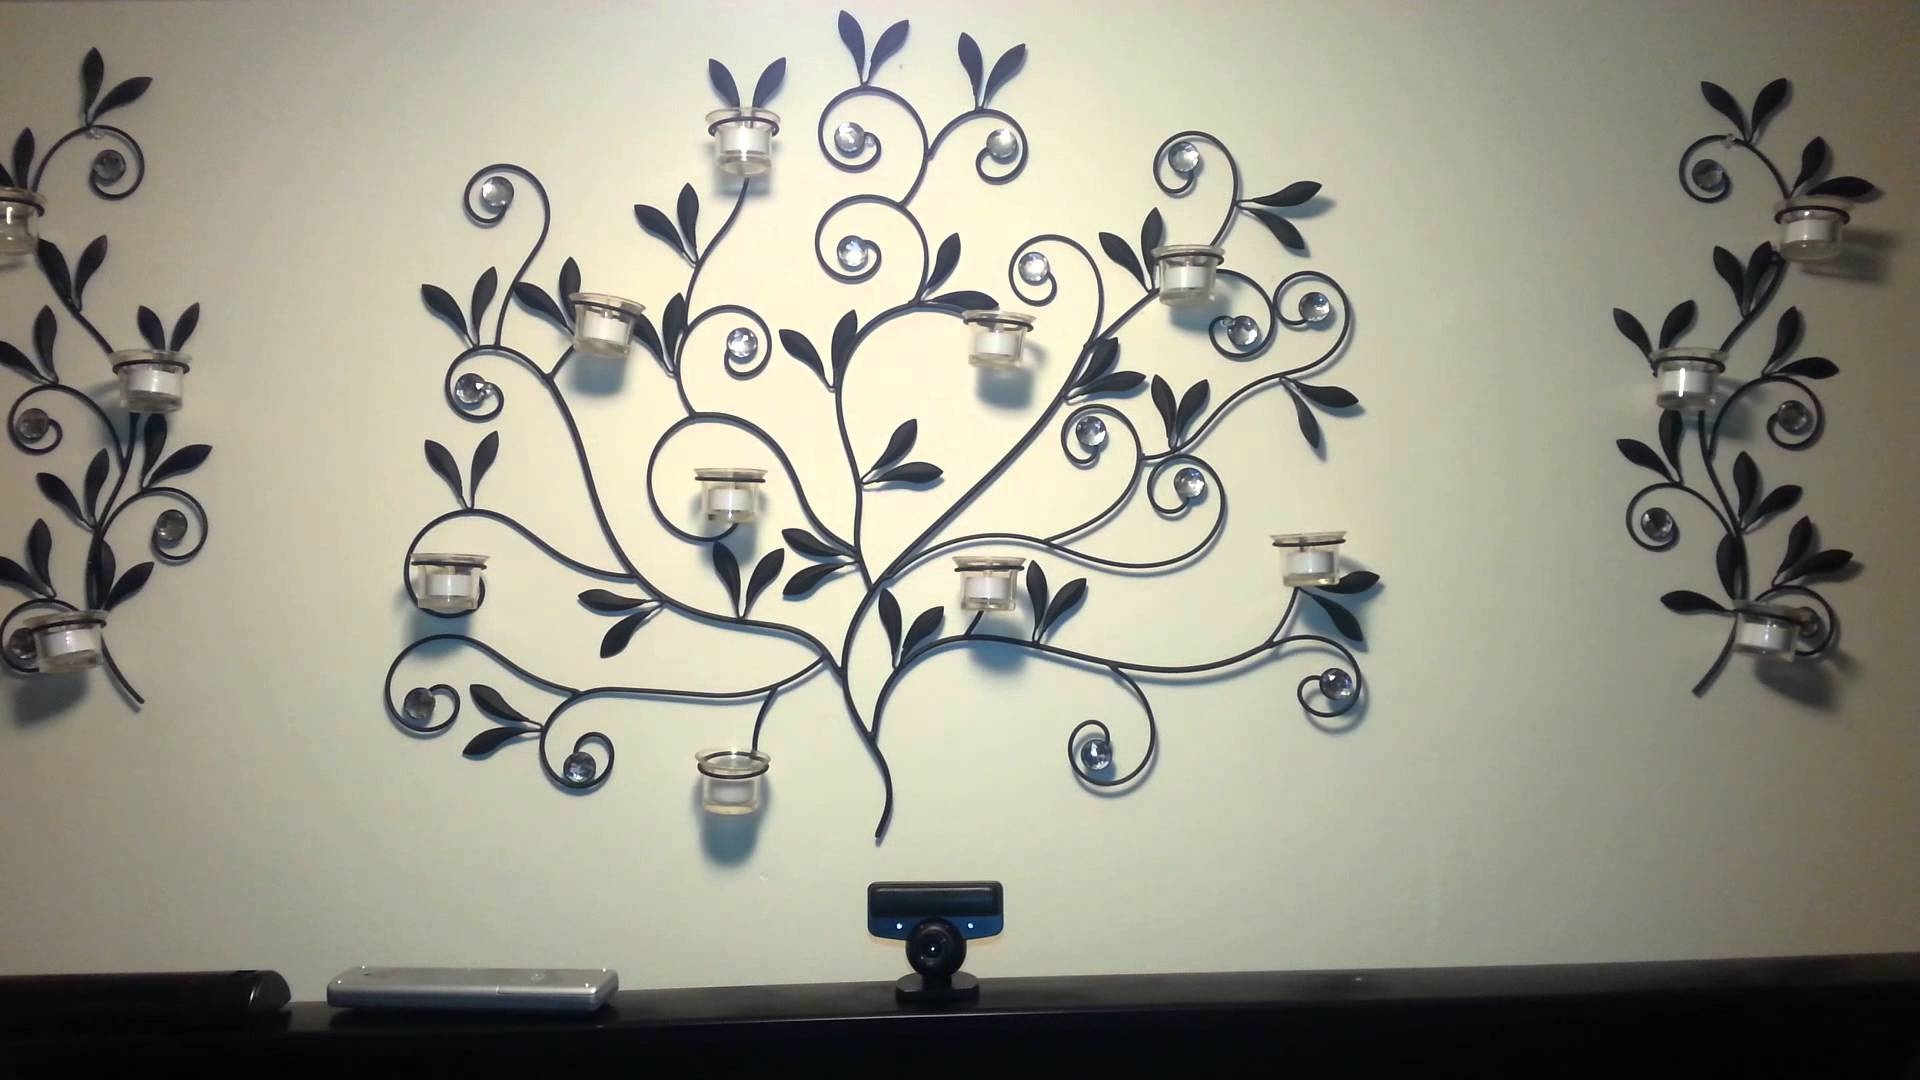 Walmart Metal Wall Art – Youtube With Regard To Recent Walmart Metal Wall Art (View 29 of 30)